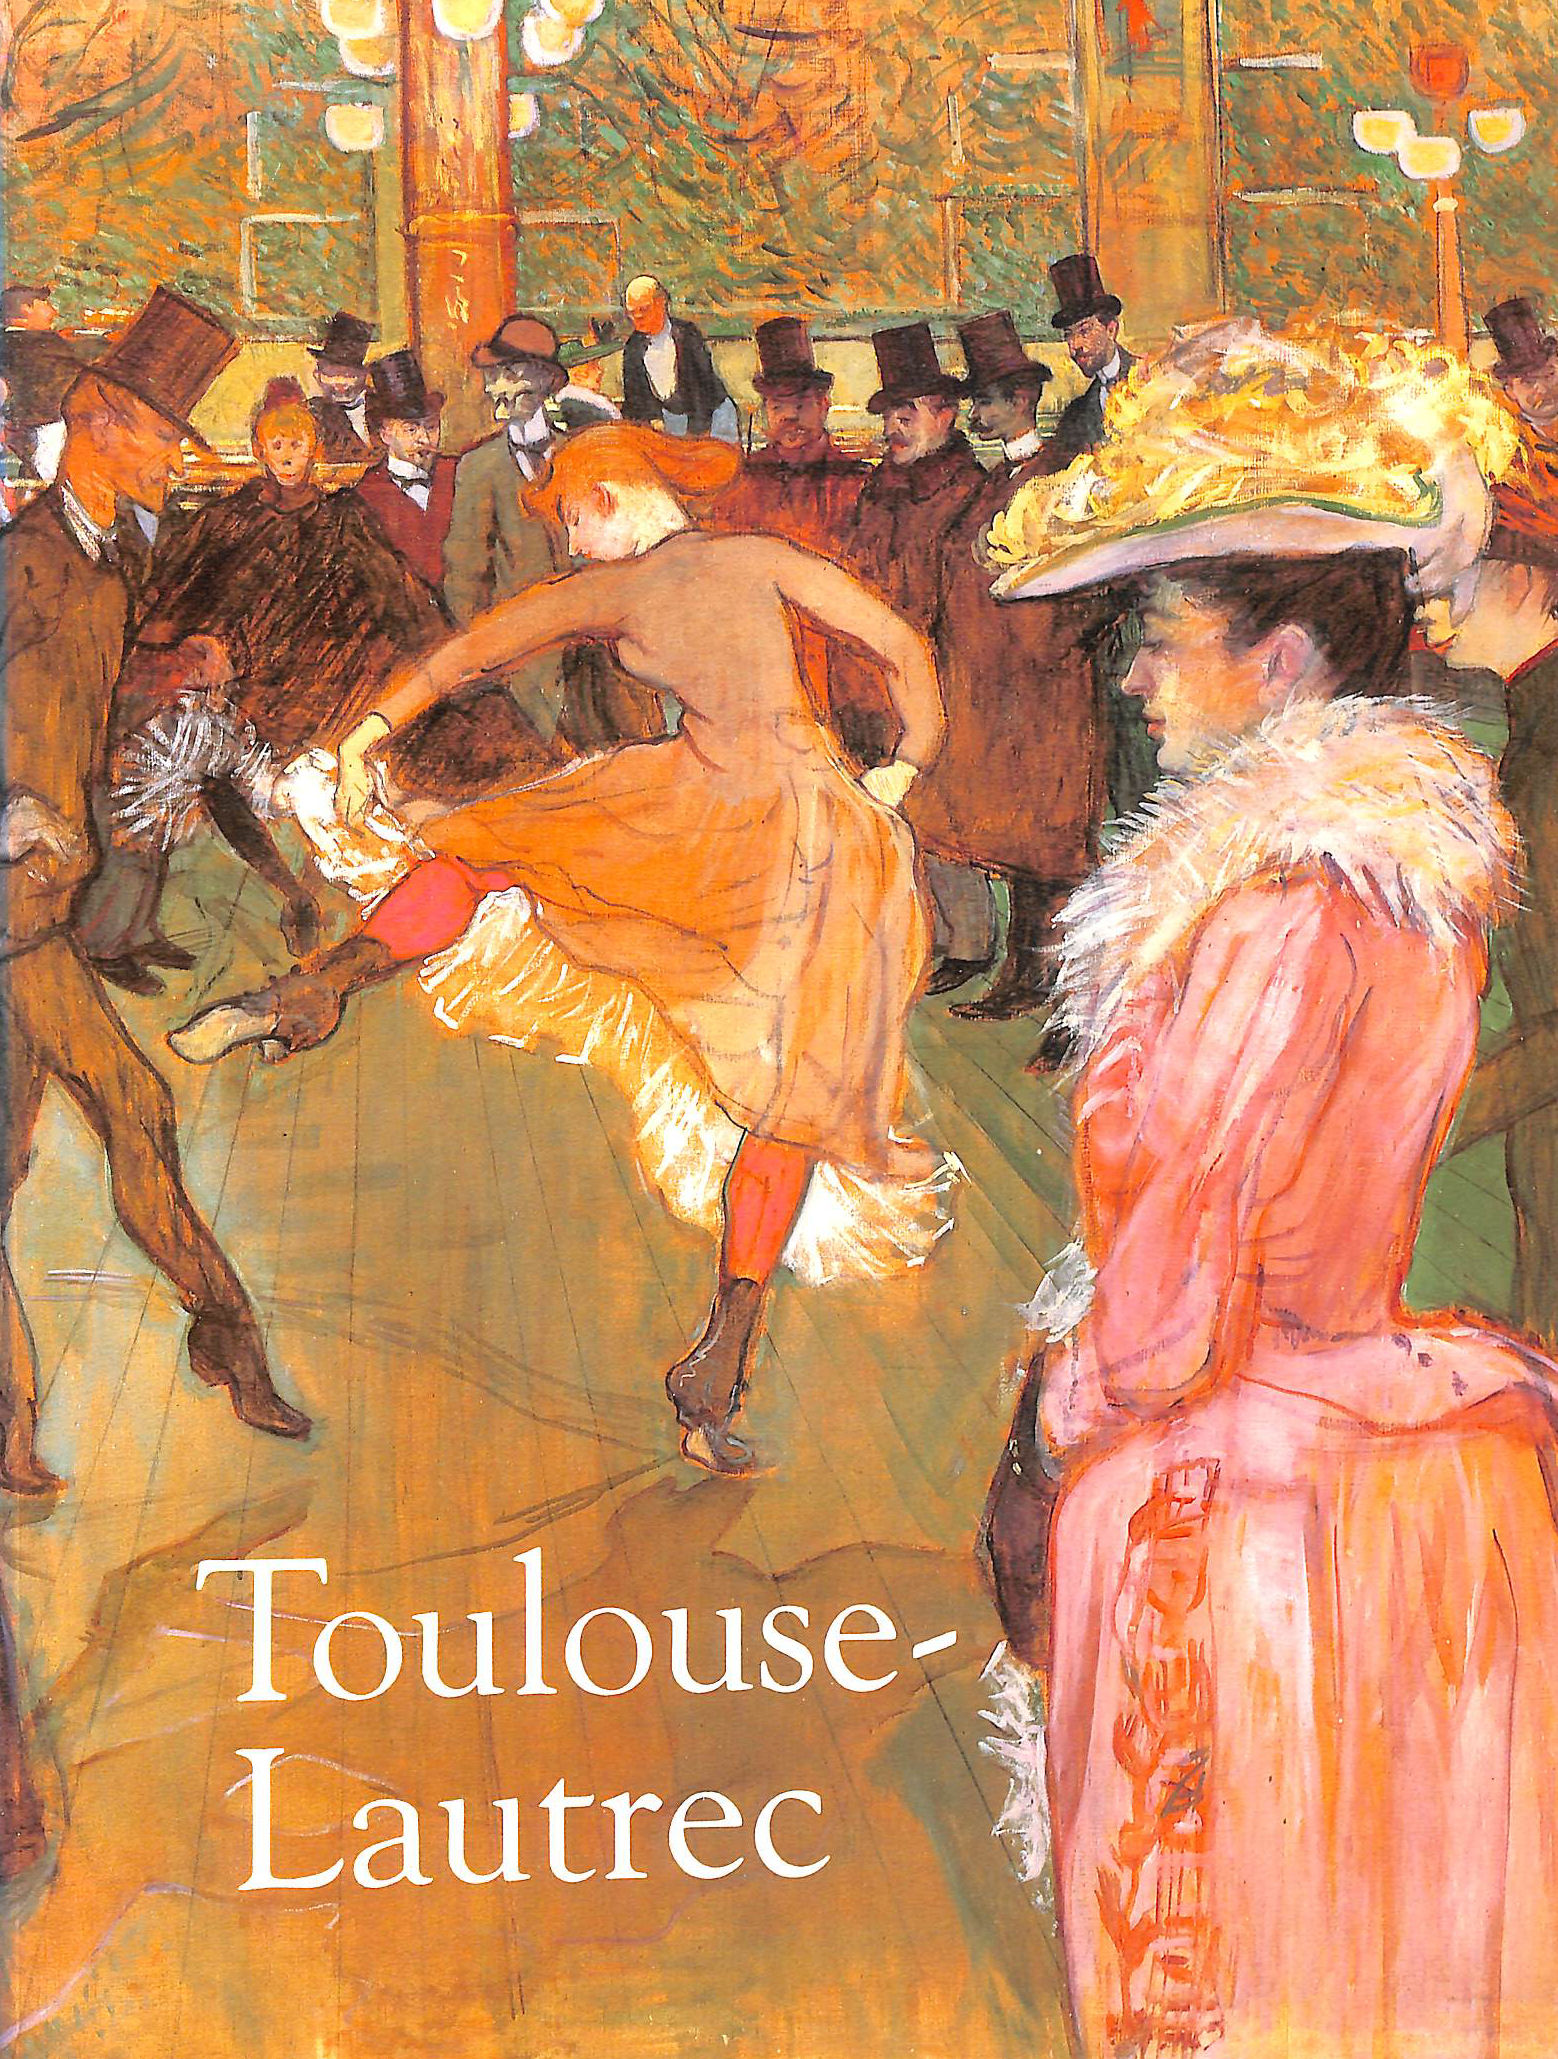 Image for Toulouse-Lautrec: Hayward Gallery, London, 10 October 1991 - 19 January 1992; Galeries Nationales Du Grand Palais, Paris, 21 February - 1 June 1992